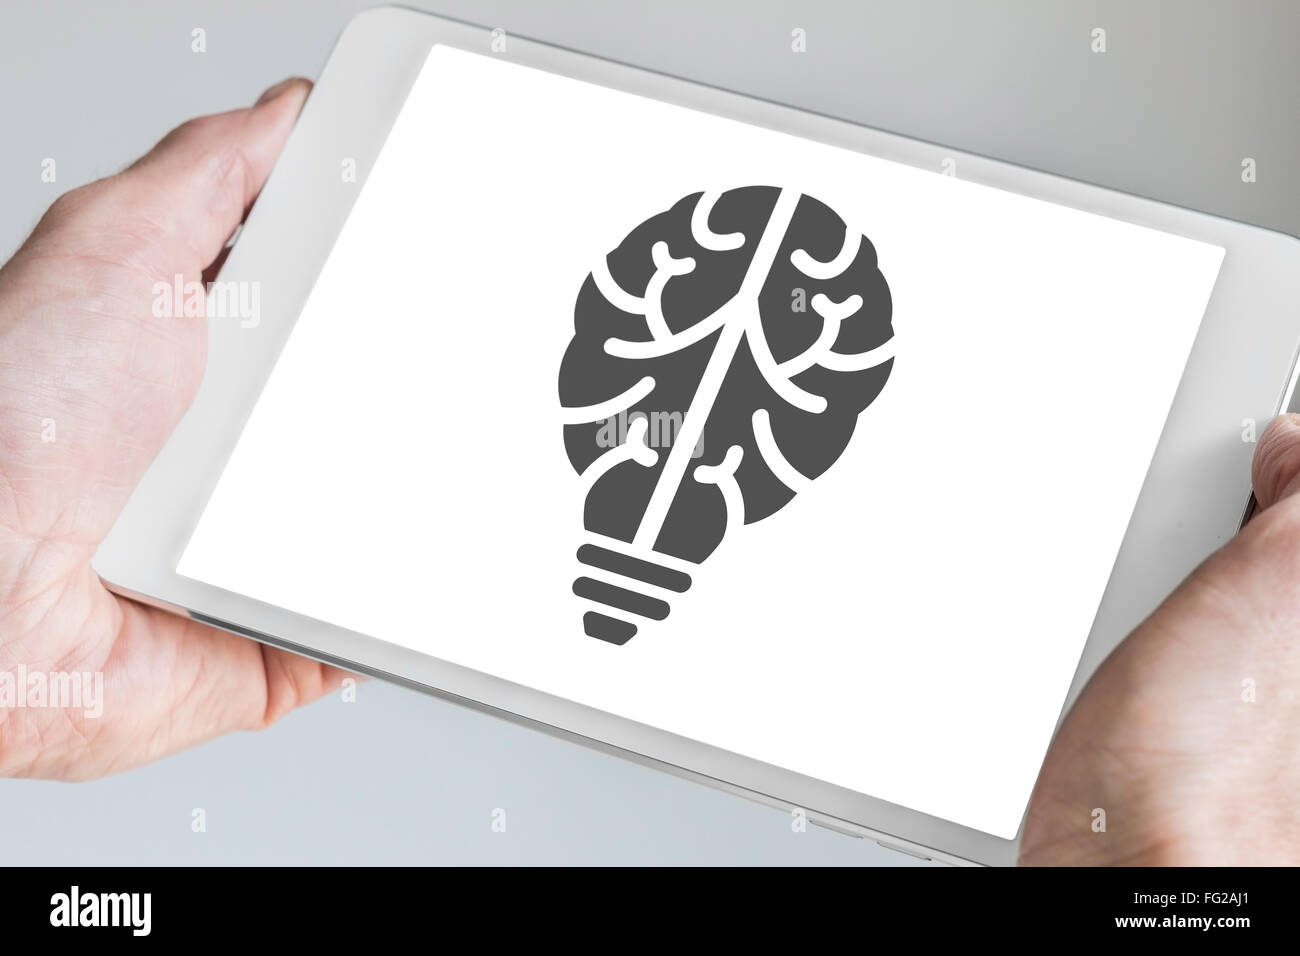 Mobile digital innovation concept visualized by brain and light bulb symbol displayed on touchscreen of modern template - Stock Image